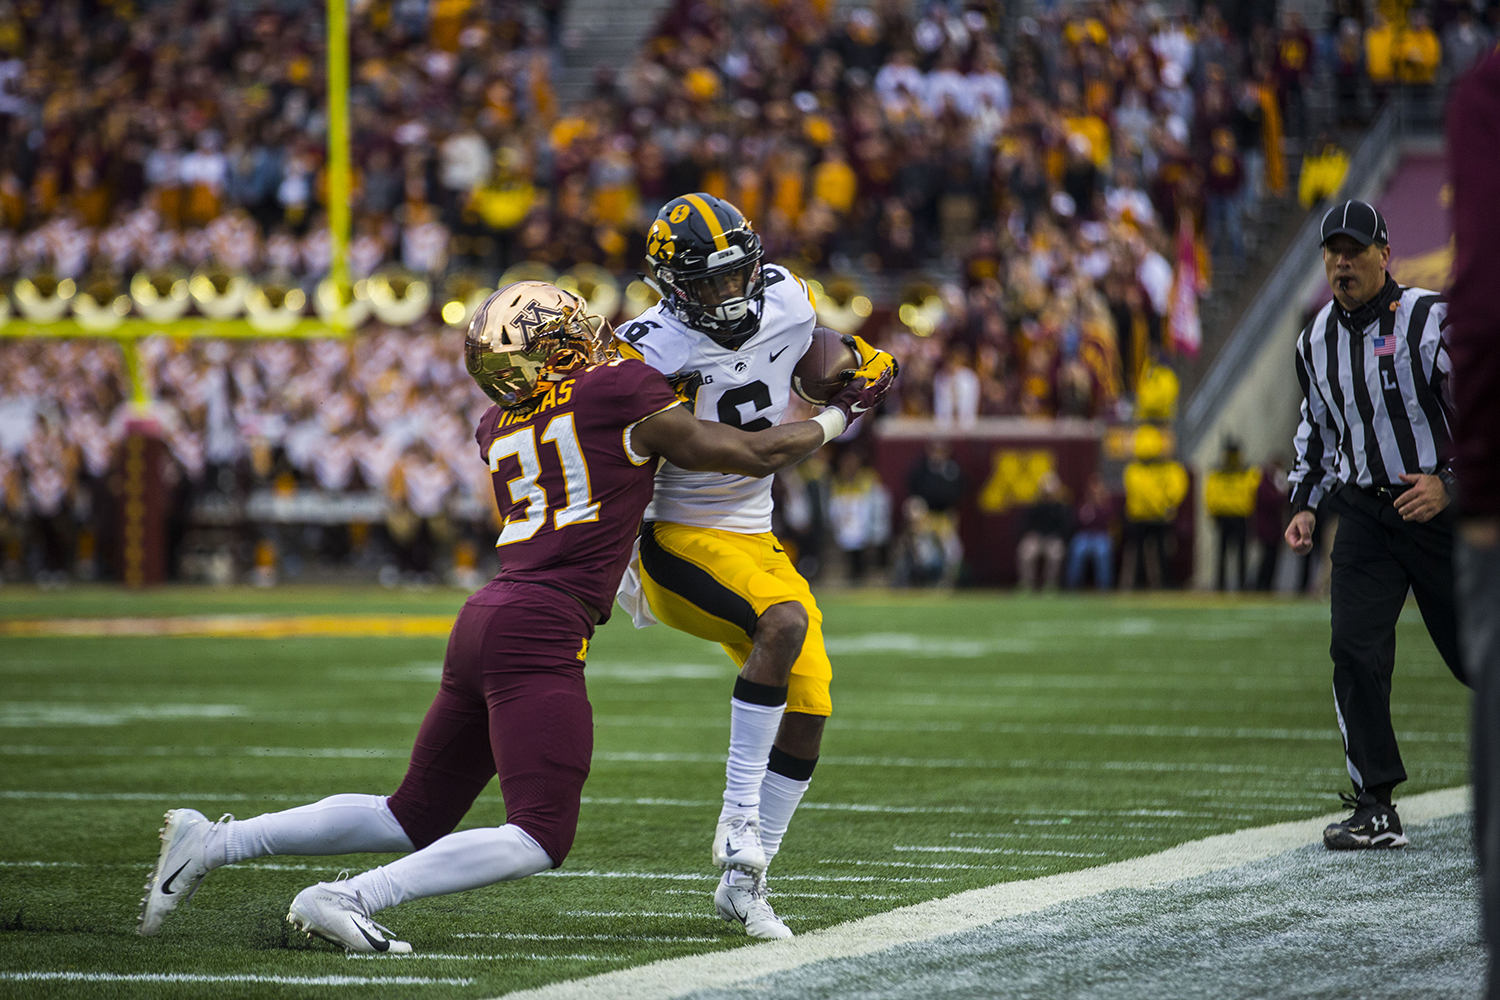 Iowa%27s+Ihmir+Smith-Marsette+attempts+to+shed+Minnesota%27s+Aaron+Mends%27+tackle+during+the+Iowa%2FMinnesota+football+game+at+TCF+Bank+Stadium+in+Minneapolis+on+Saturday%2C+October+6%2C+2018.+The+Hawkeyes+defeated+the+Golden+Gophers%2C+48-31.+